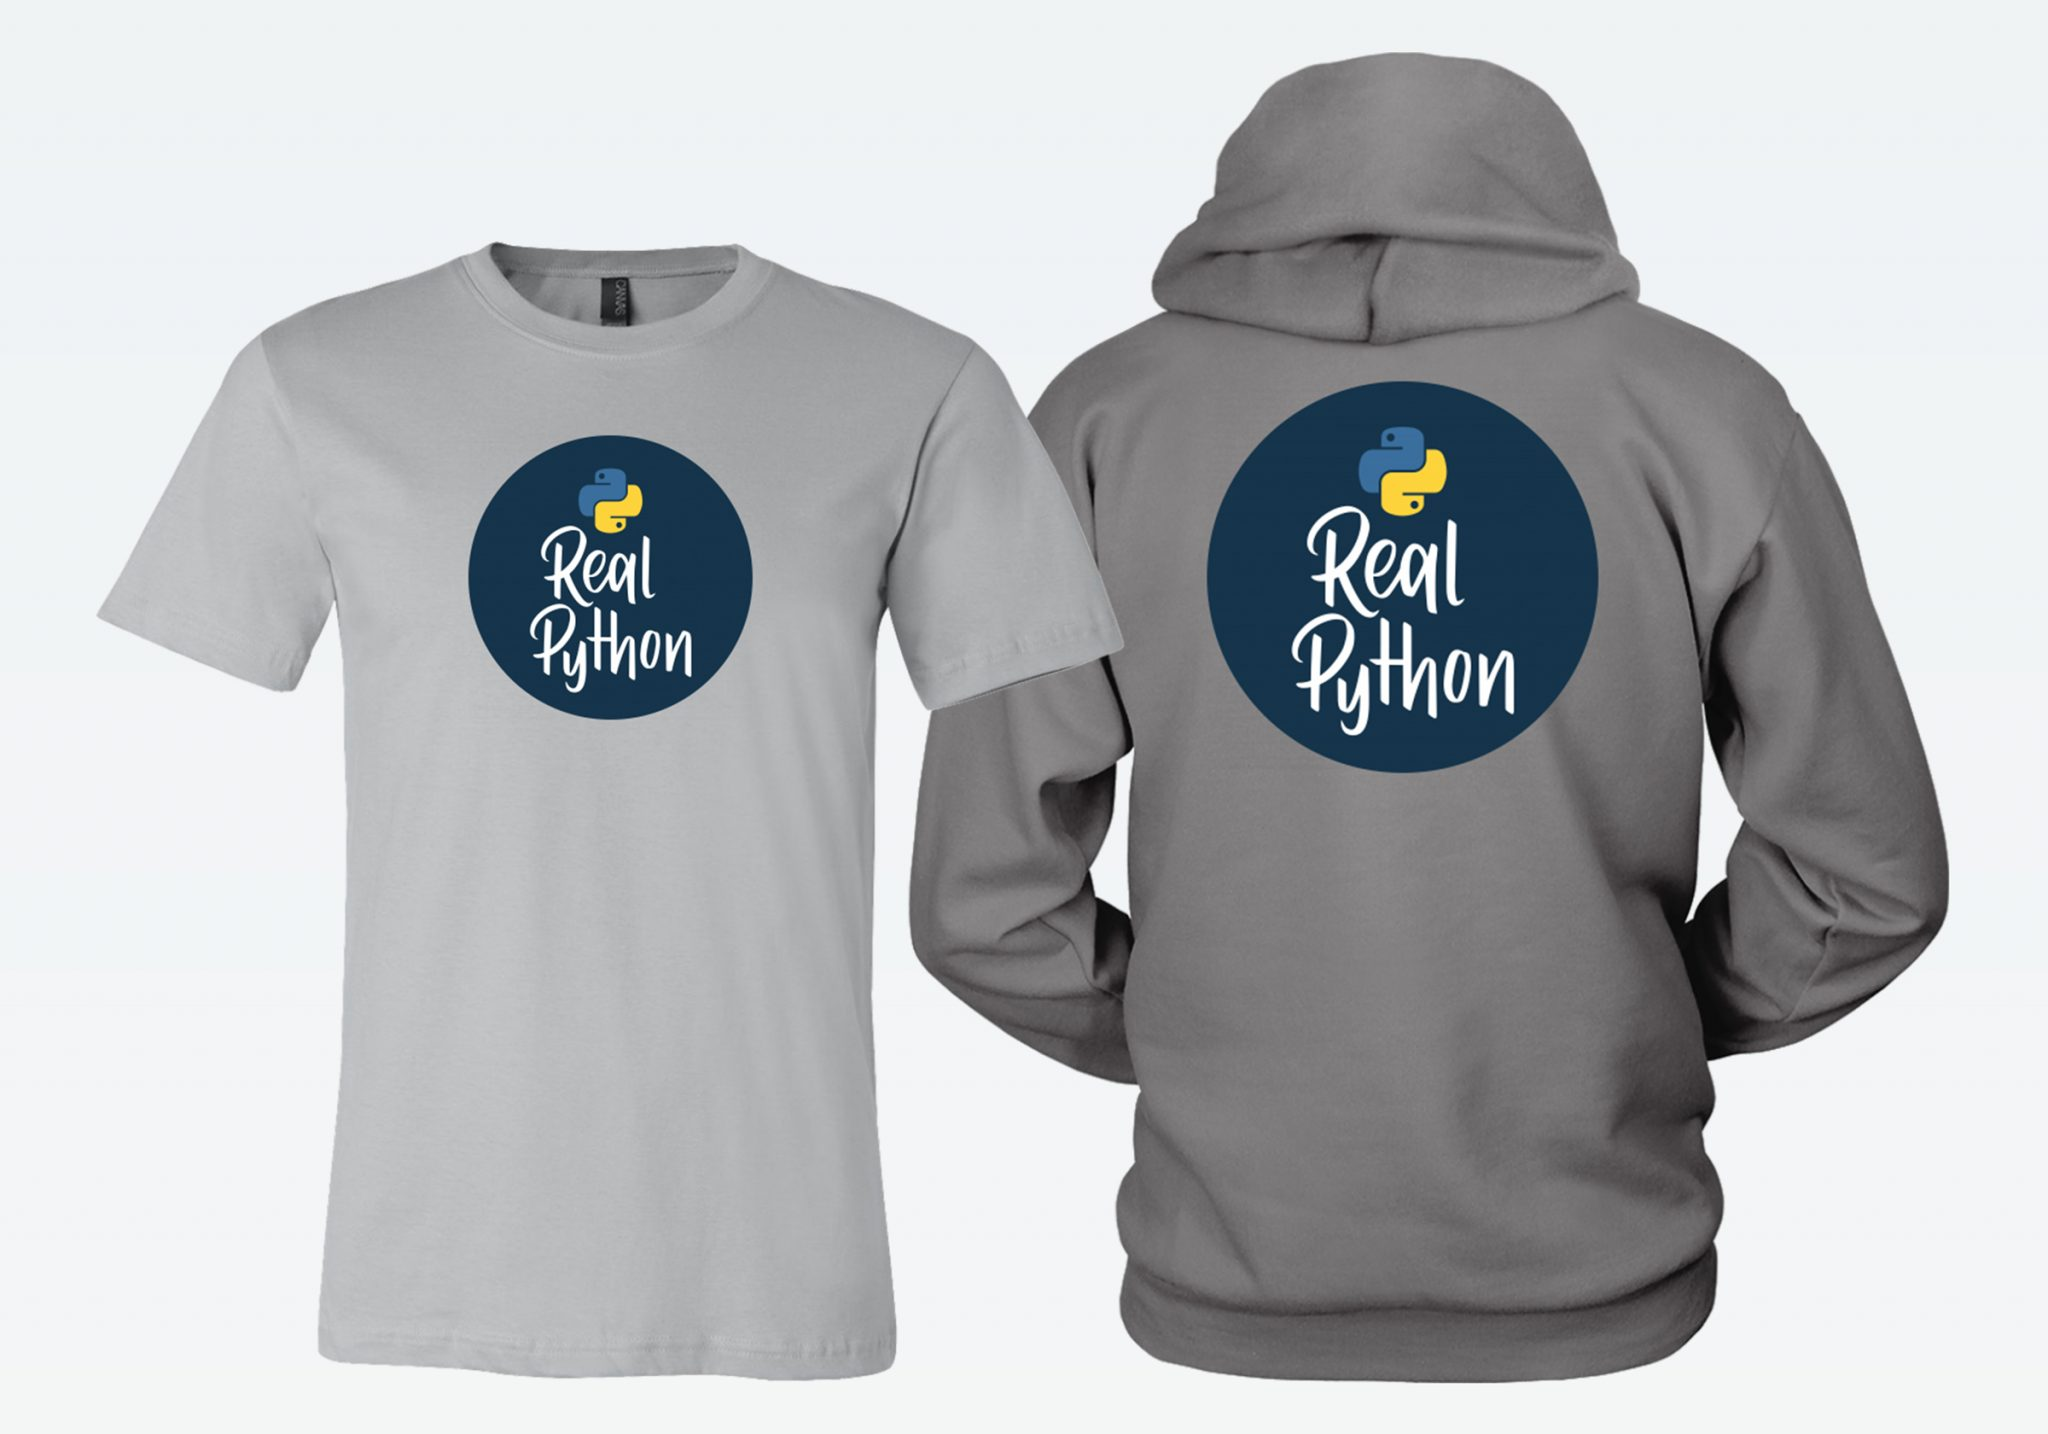 logo redesign apparel